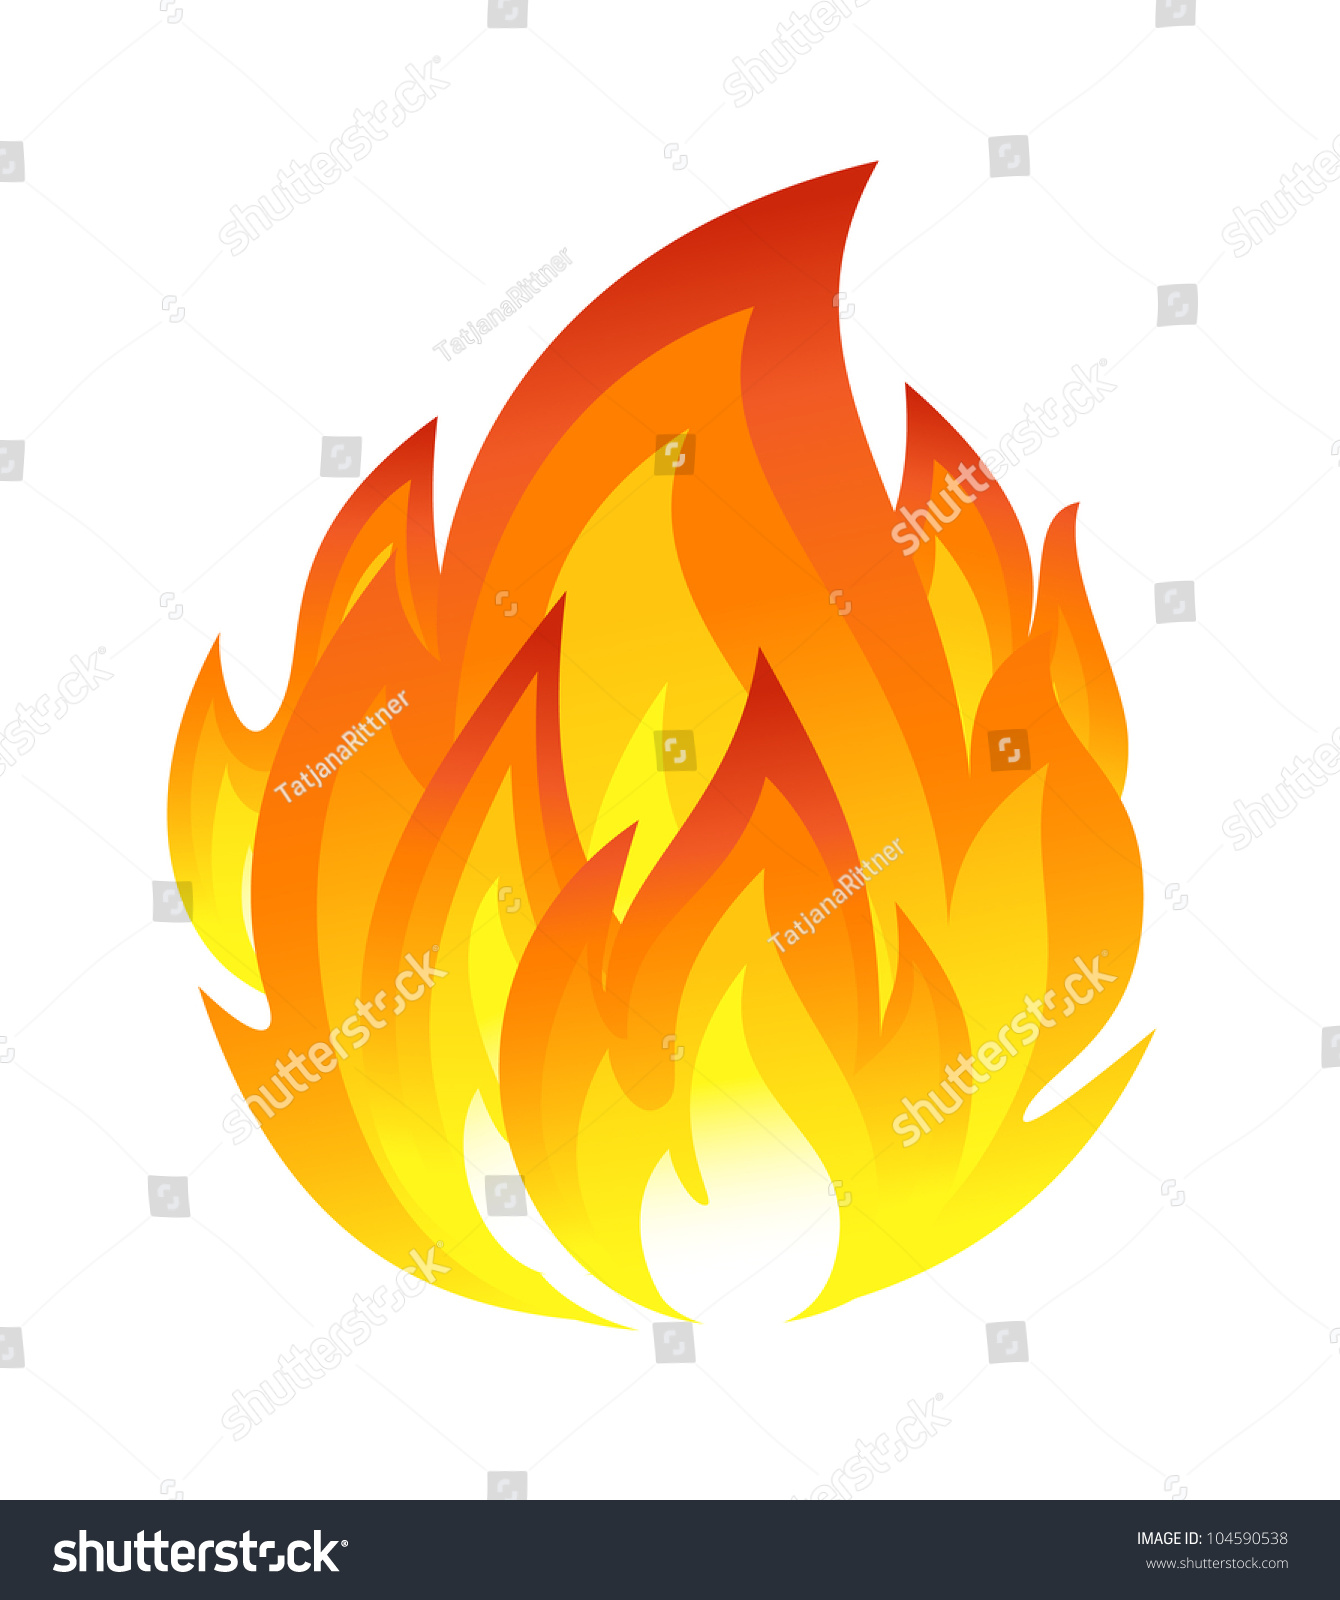 Free Silhouette Images Symbol Fire Stock Vector 104590538 Shutterstock